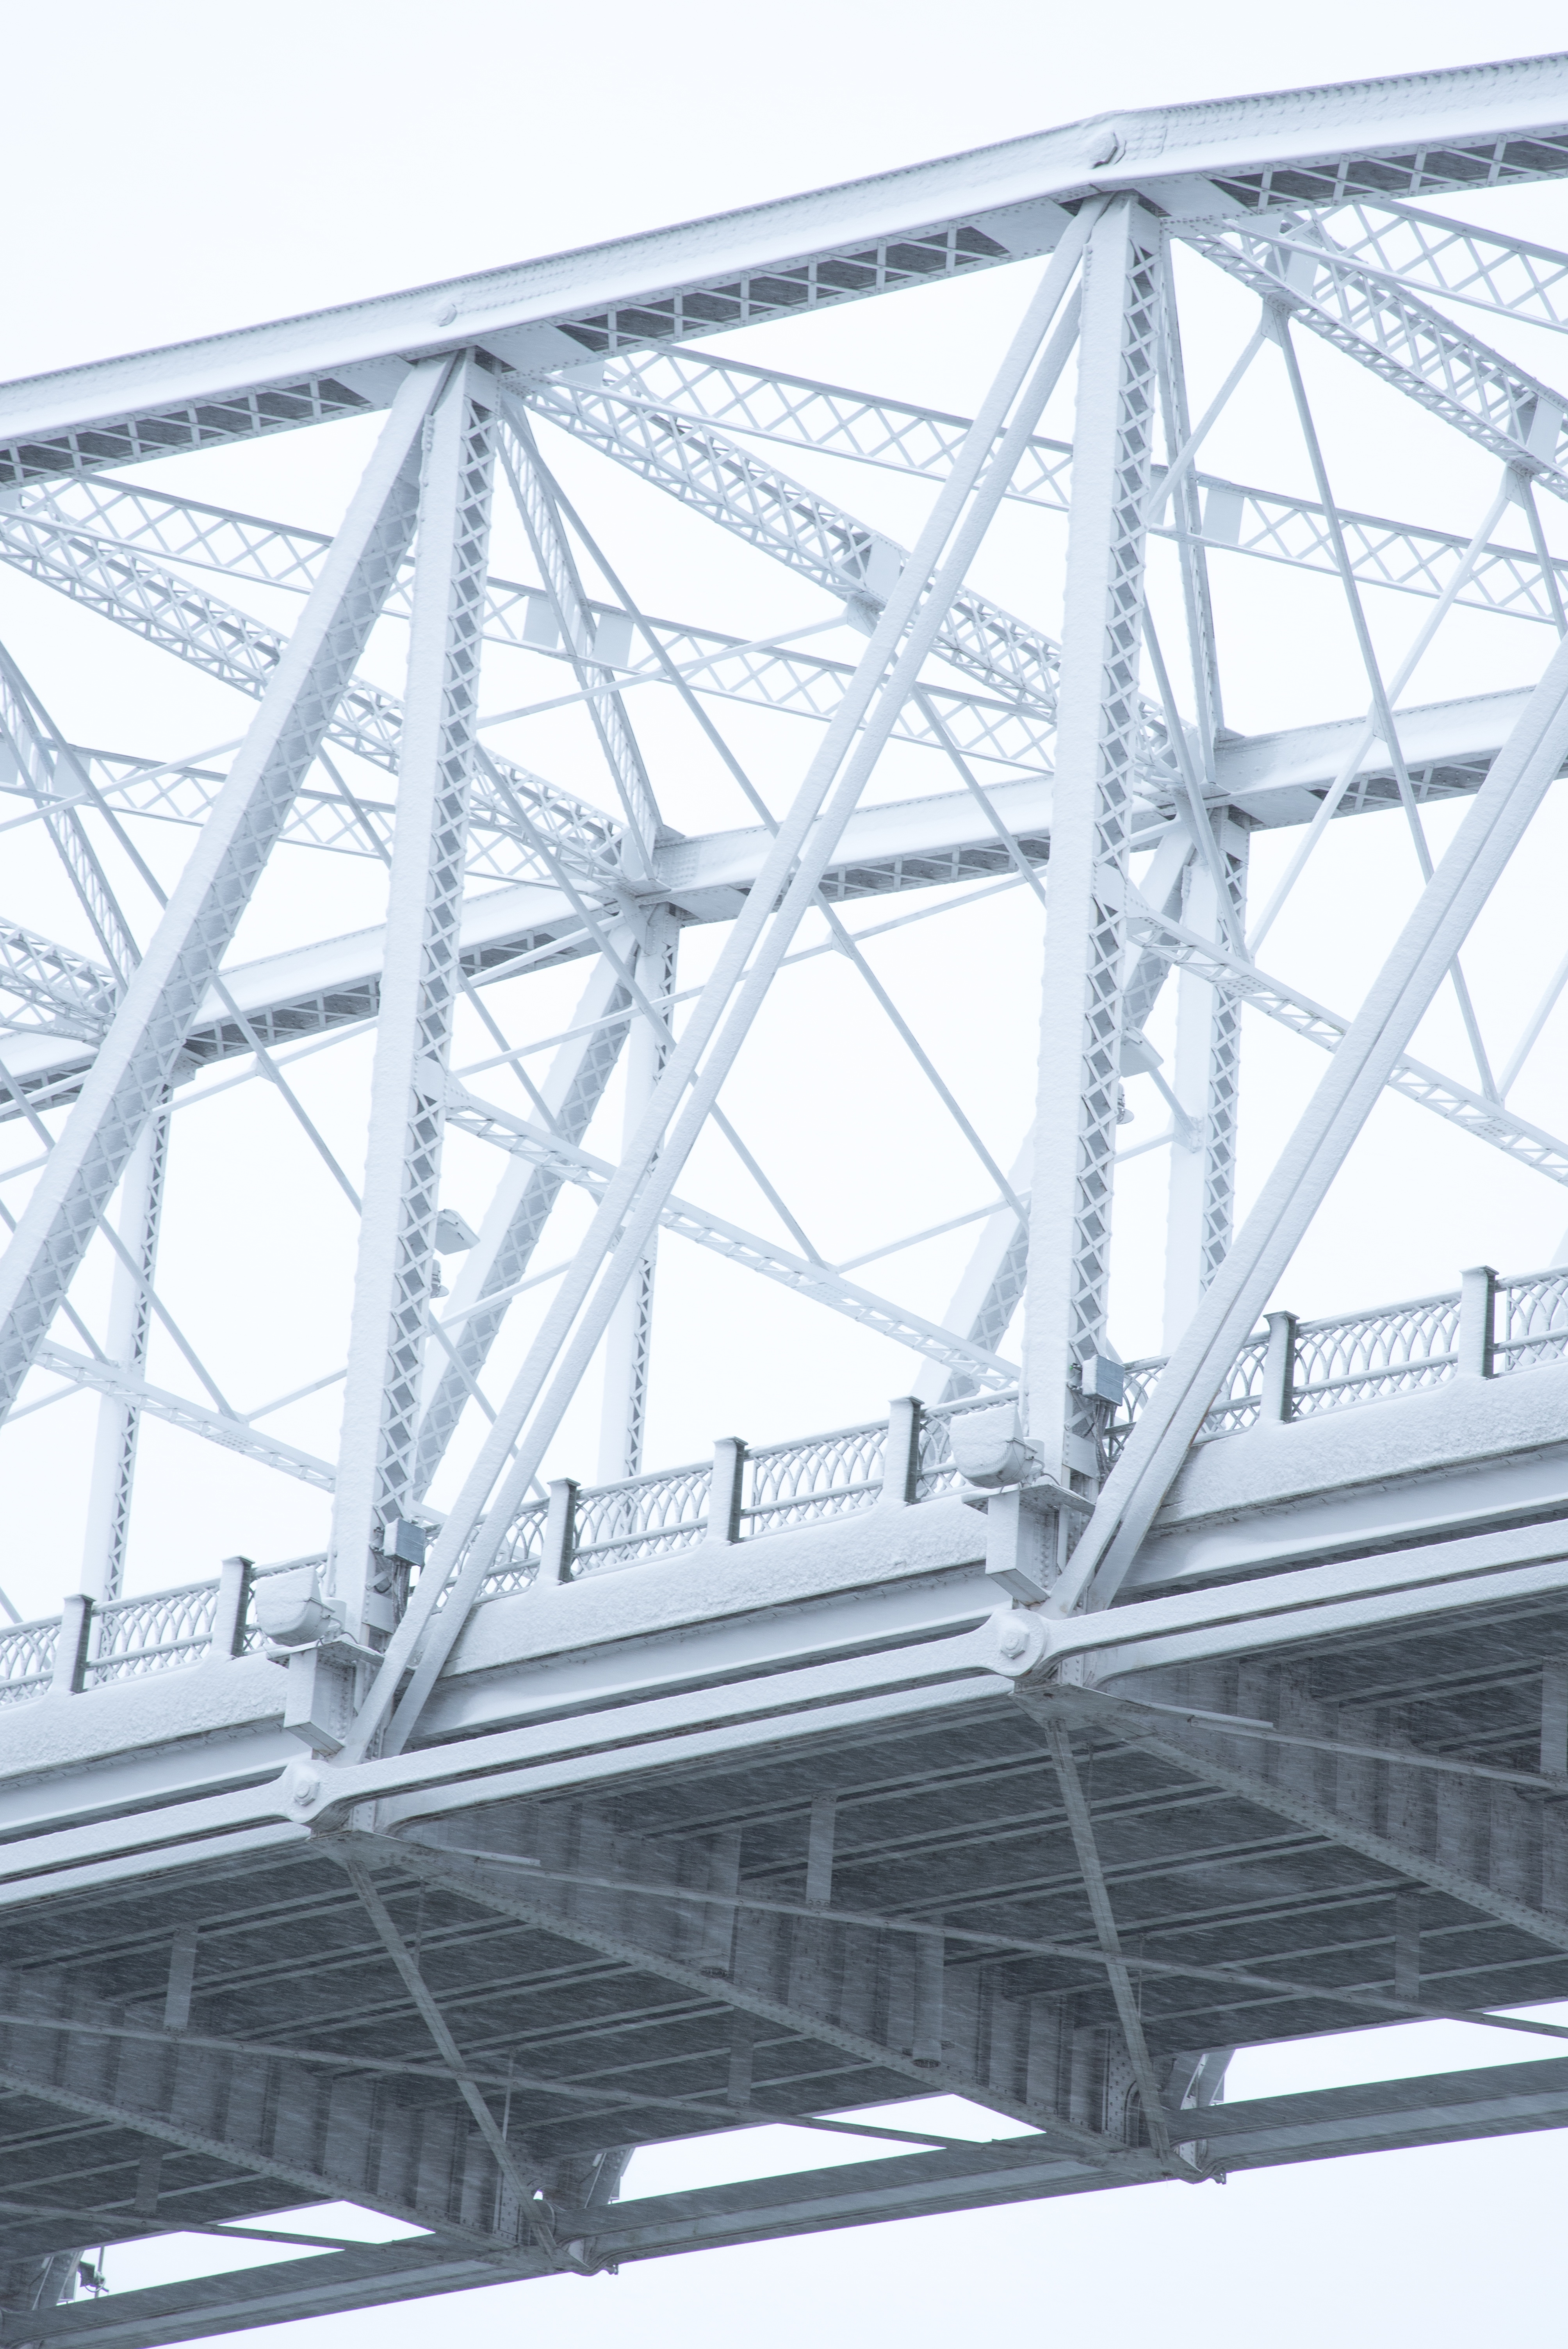 Metallic Bridge, Bridge, City, Construction, Metal, HQ Photo